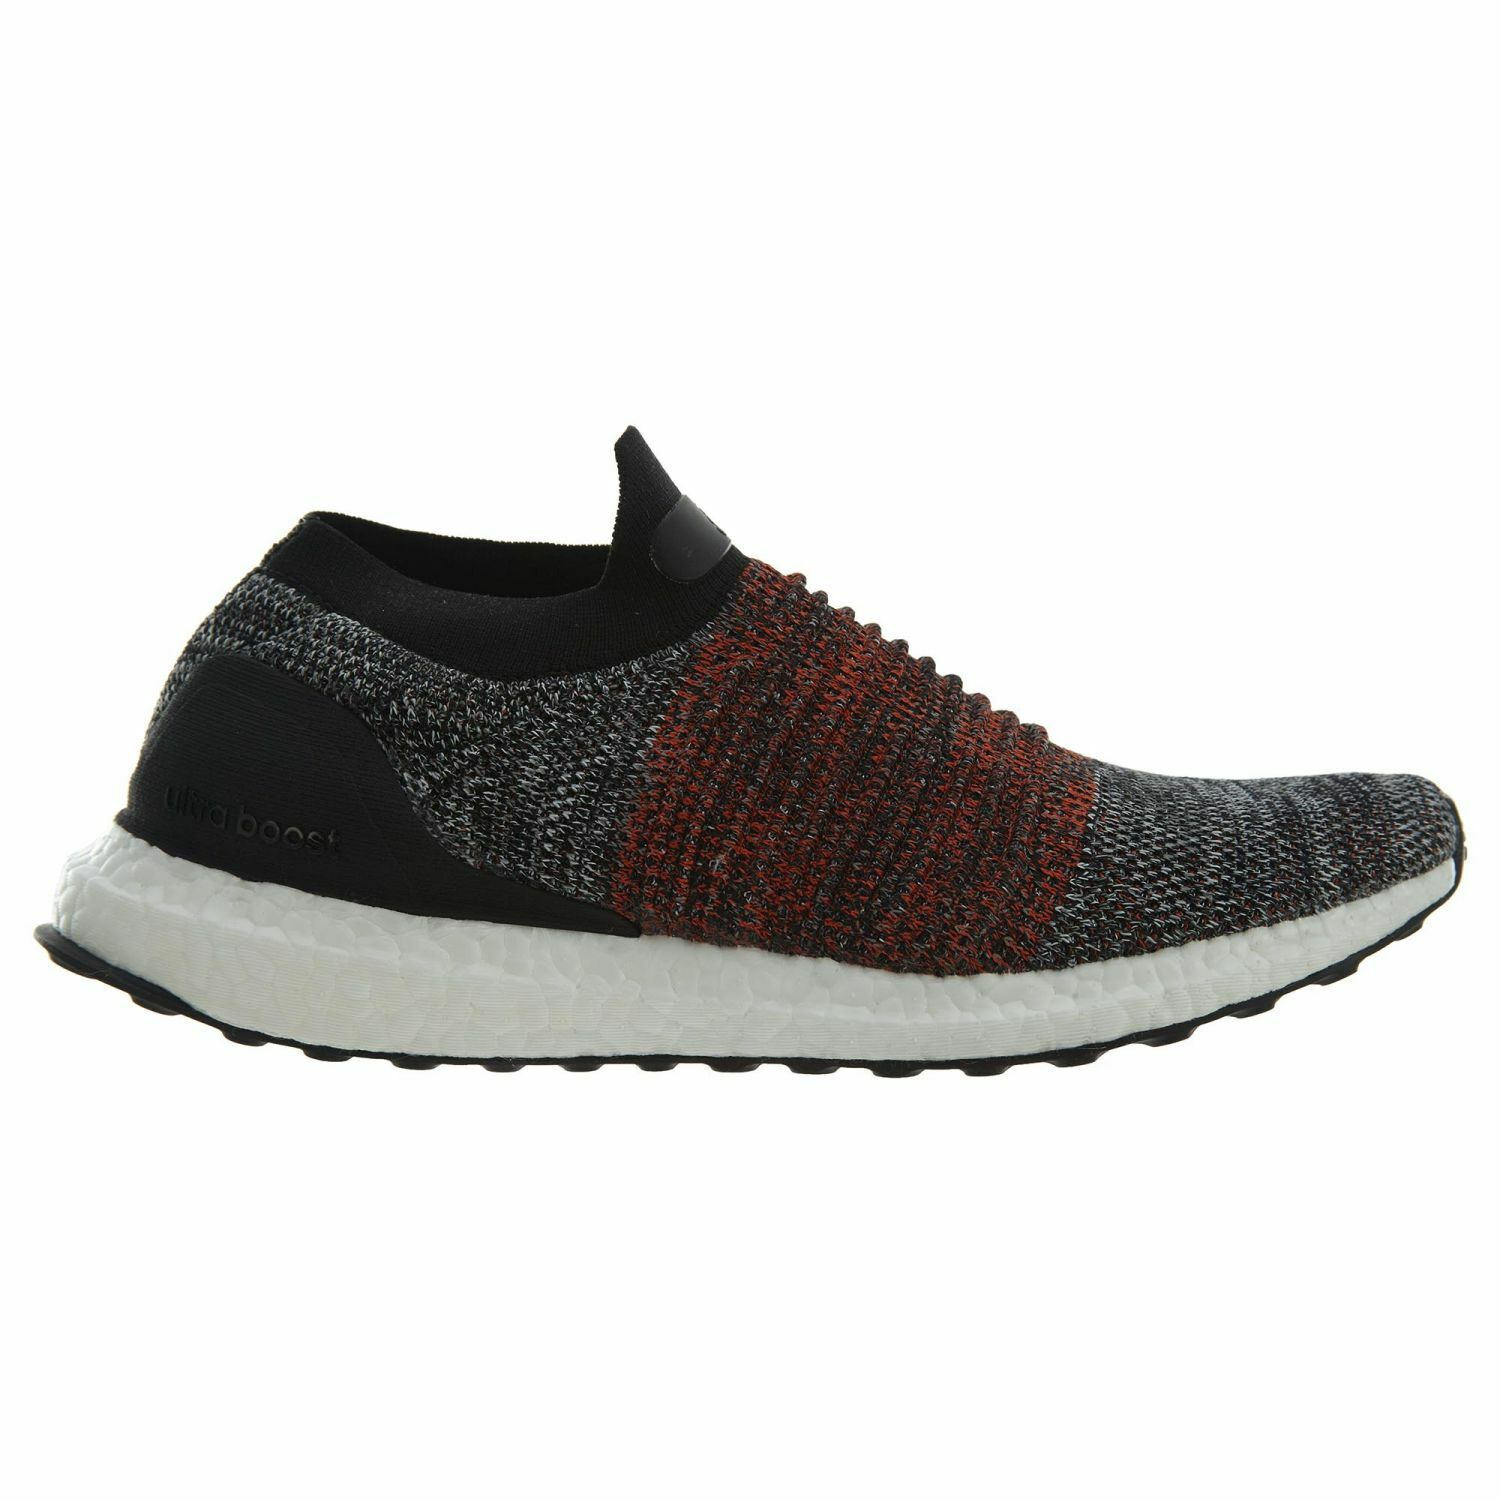 Adidas Ultra Boost Laceless Mens S80769 Black Primeknit Running shoes Size 10.5